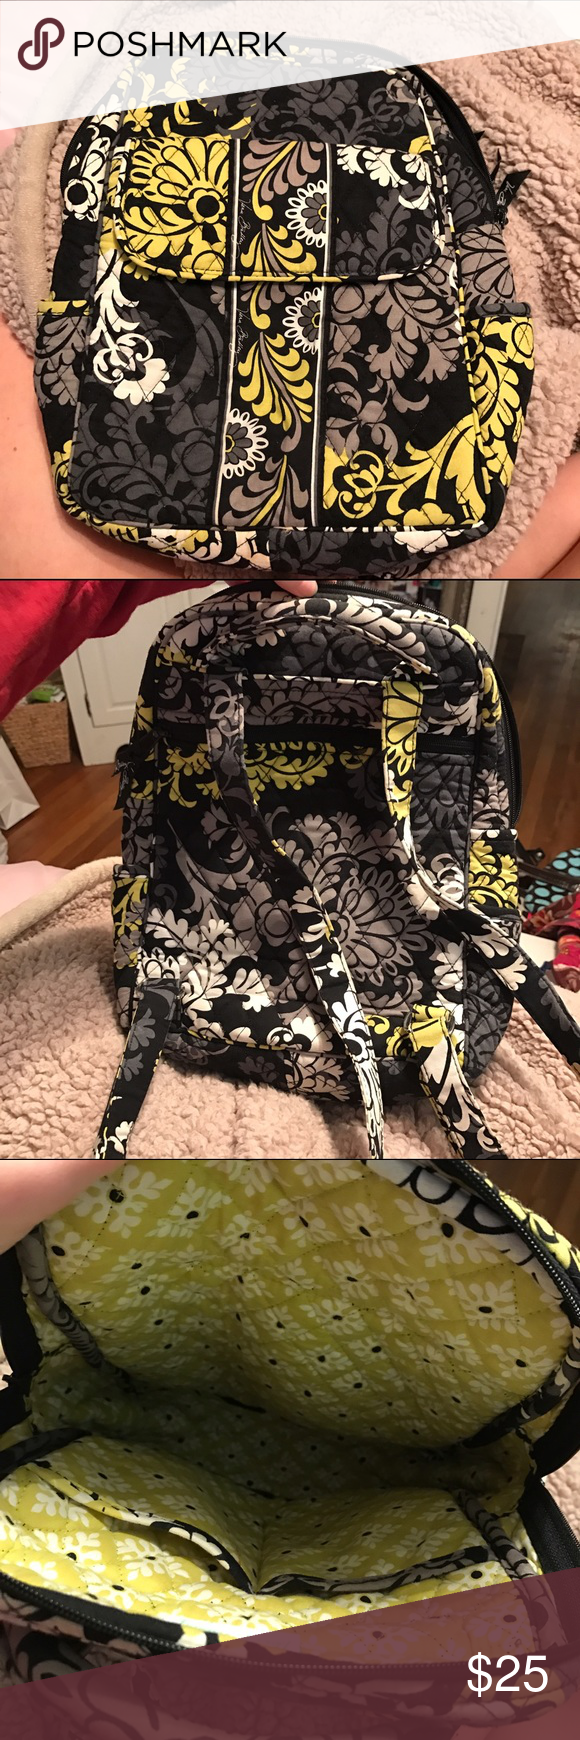 Small Vera Bradley Backpack And Lunch Box Black White Grey